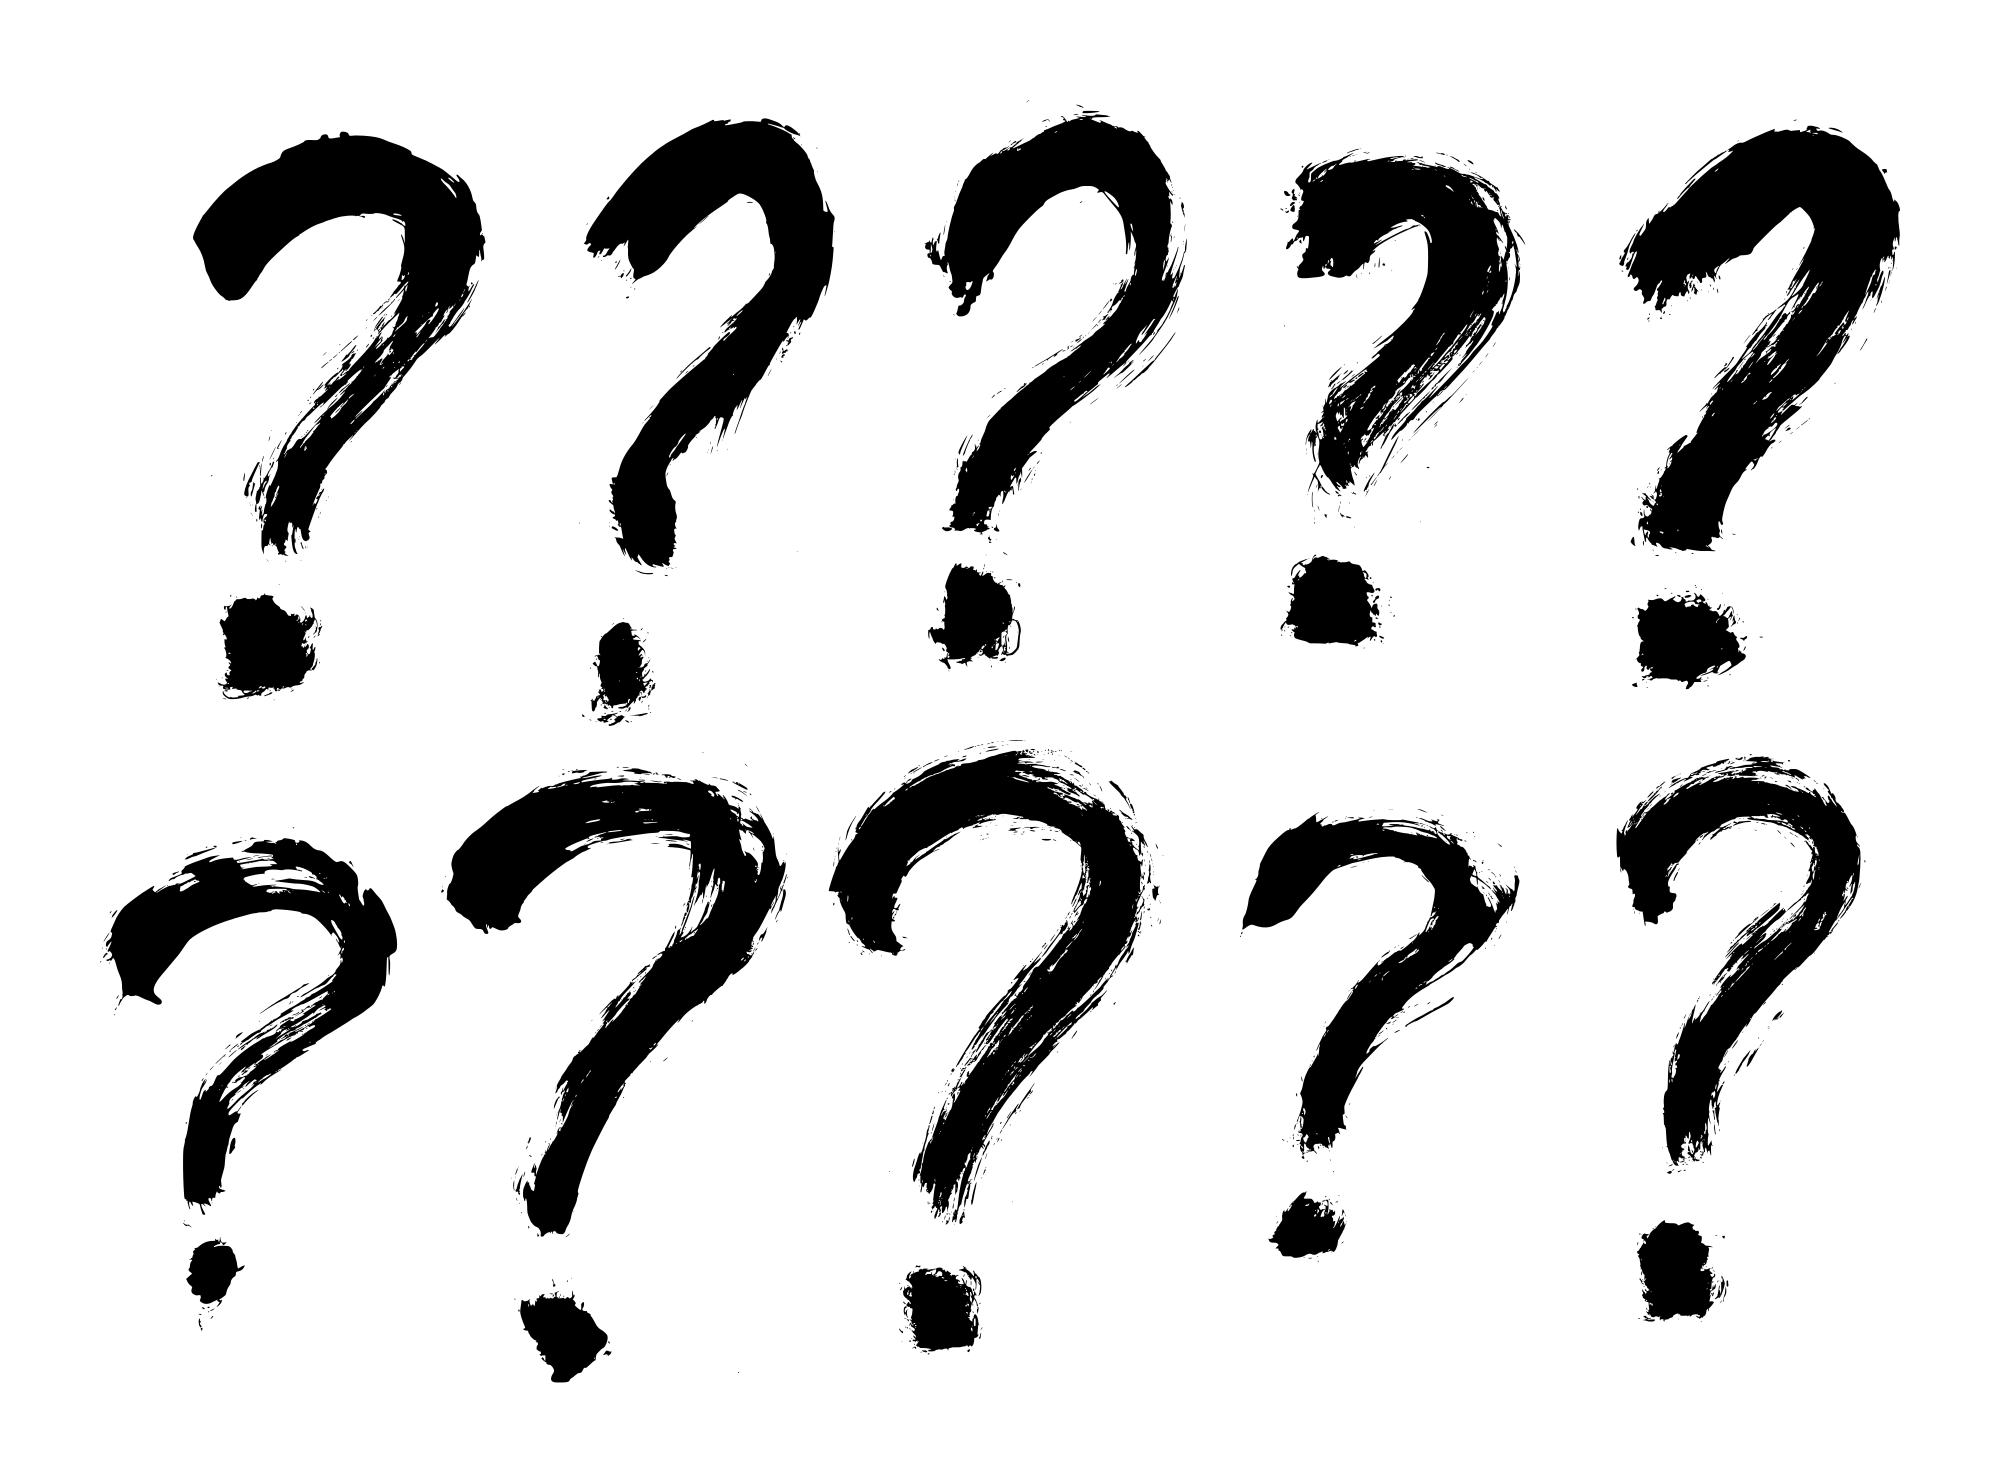 10 Grunge Question Mark Png Transparent Onlygfx Com